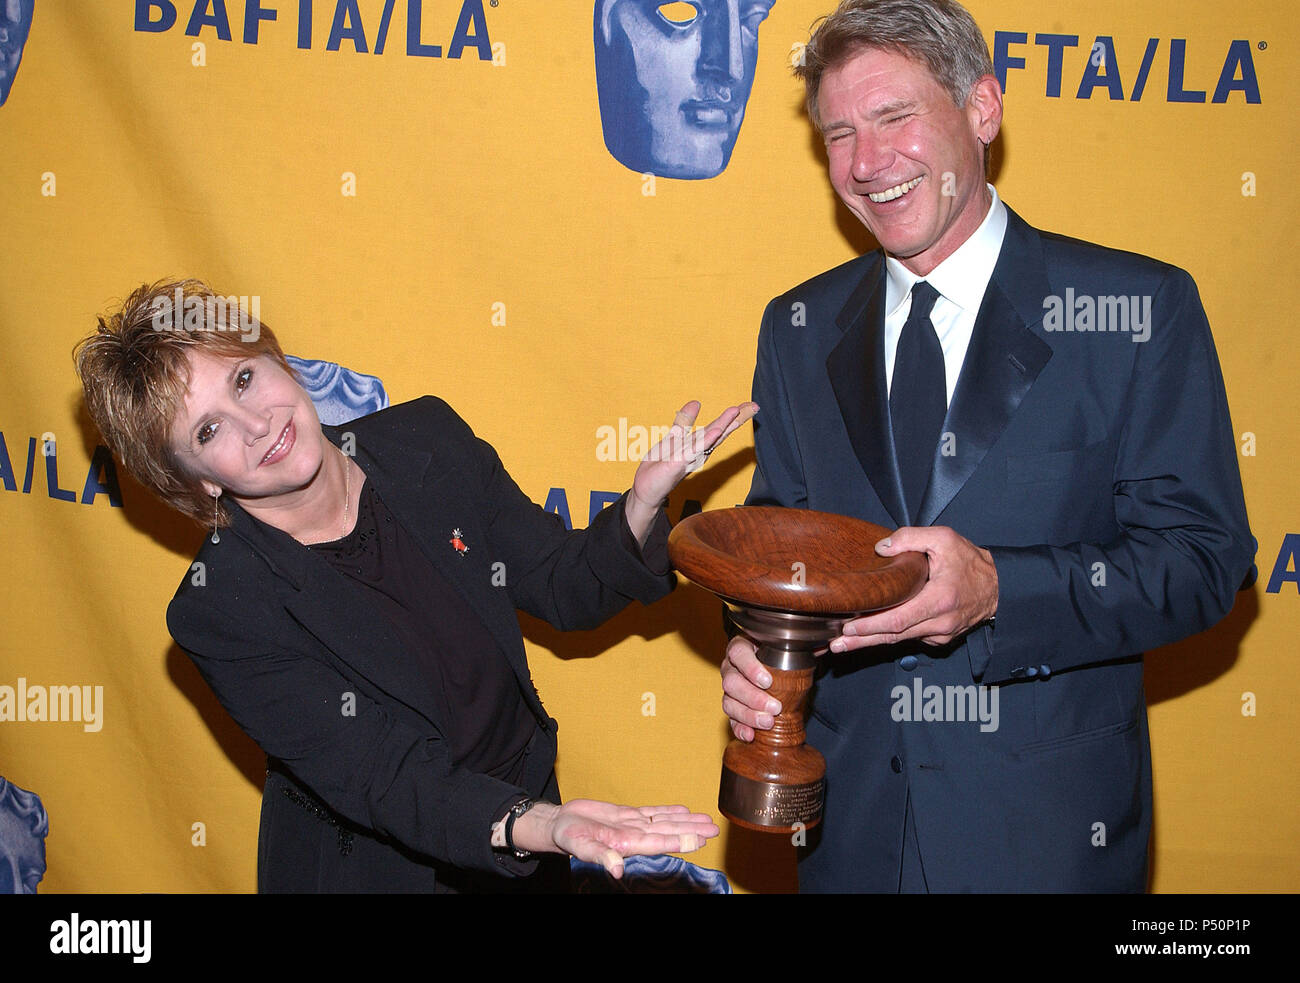 Carrie Fisher and Harrison Ford at The 11th Annual BAFTA-LA -Britannia Awards presented to George Lucas at the Beverly Hilton in Los Angeles. April 12,  2002.             -            FisherCarrie_FordHarrison01.jpgFisherCarrie_FordHarrison01  Event in Hollywood Life - California, Red Carpet Event, USA, Film Industry, Celebrities, Photography, Bestof, Arts Culture and Entertainment, Topix Celebrities fashion, Best of, Hollywood Life, Event in Hollywood Life - California,  backstage trophy, Awards show, movie celebrities, TV celebrities, Music celebrities, Topix, Bestof, Arts Culture and Entert - Stock Image